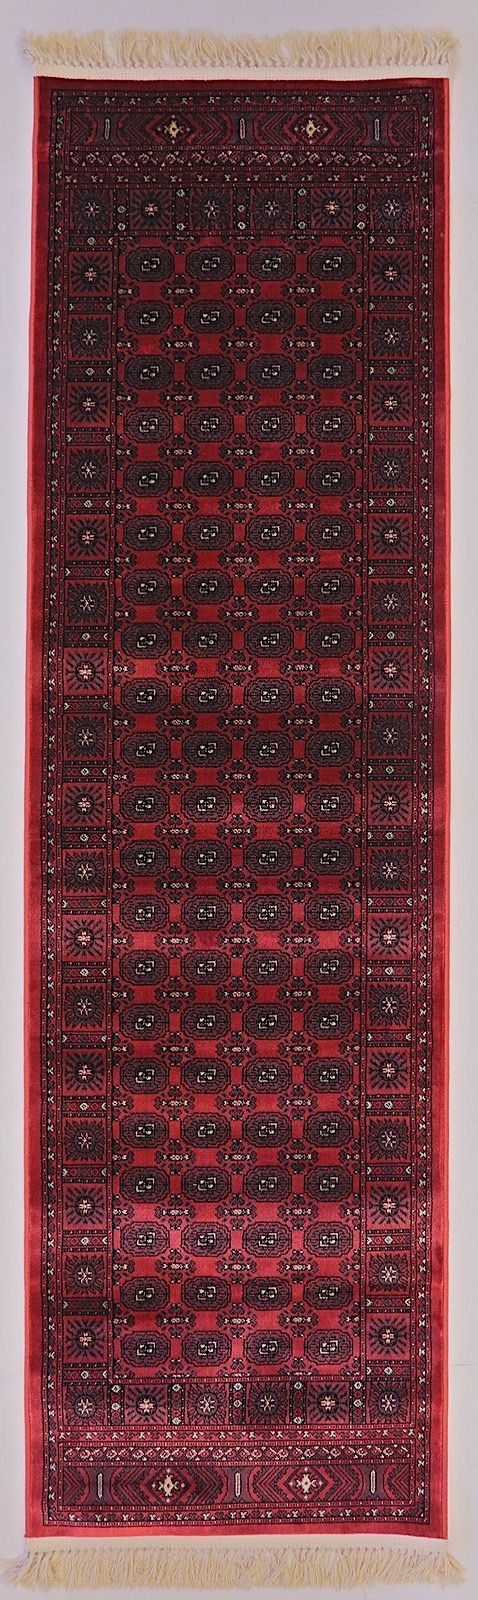 dynamic rugs crown traditional area rug collection